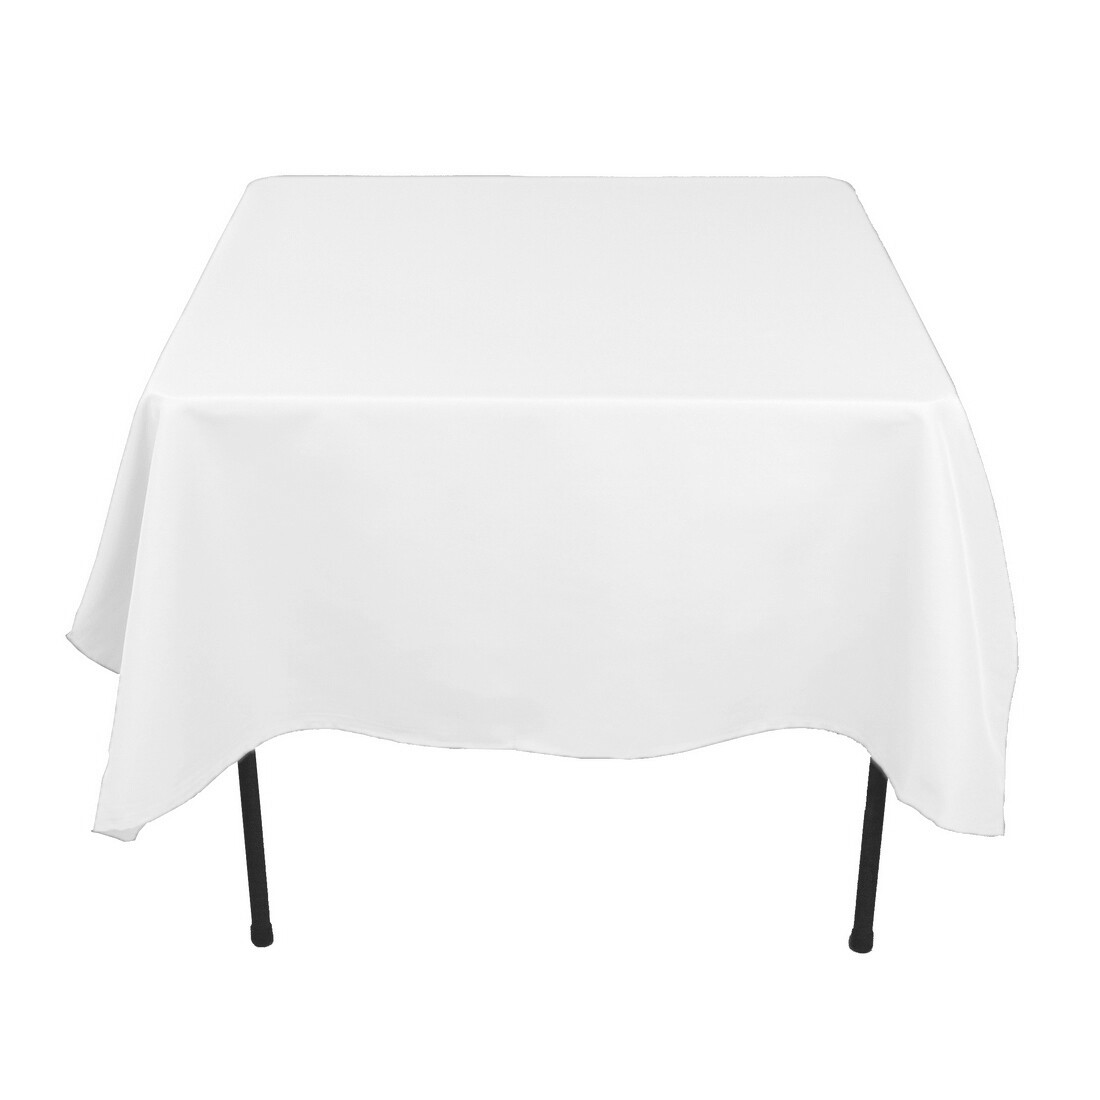 """Polyester table fabric - White, 60"""" (per yard)"""